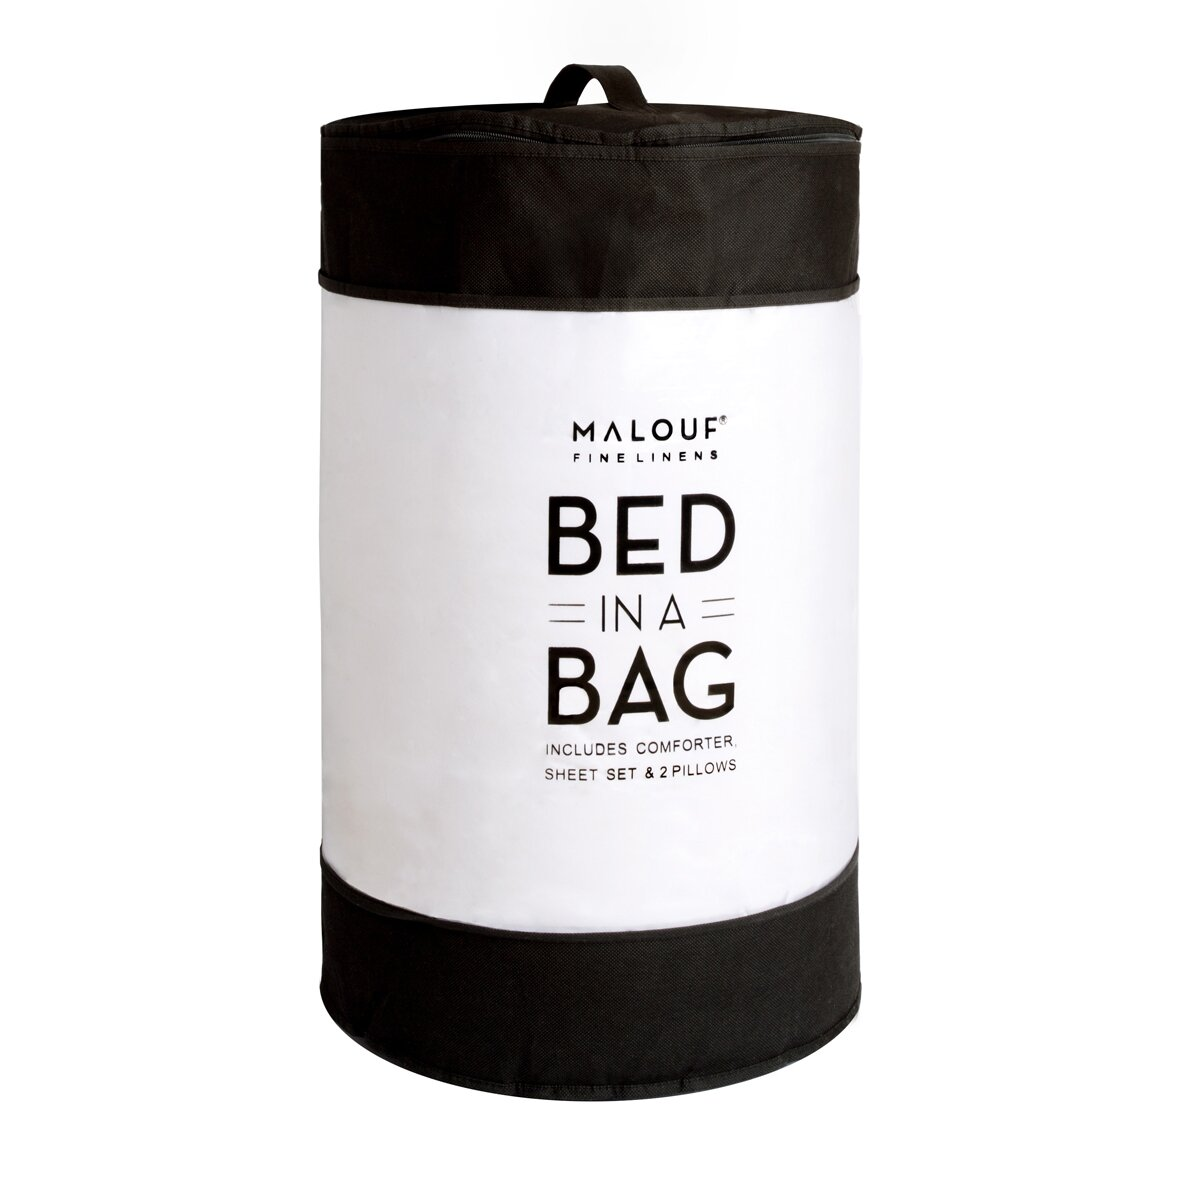 Malouf 4 Piece Bed in A Bag Set amp Reviews Wayfair : Malouf Bed in a Bag Set MA01 from www.wayfair.com size 1180 x 1180 jpeg 112kB